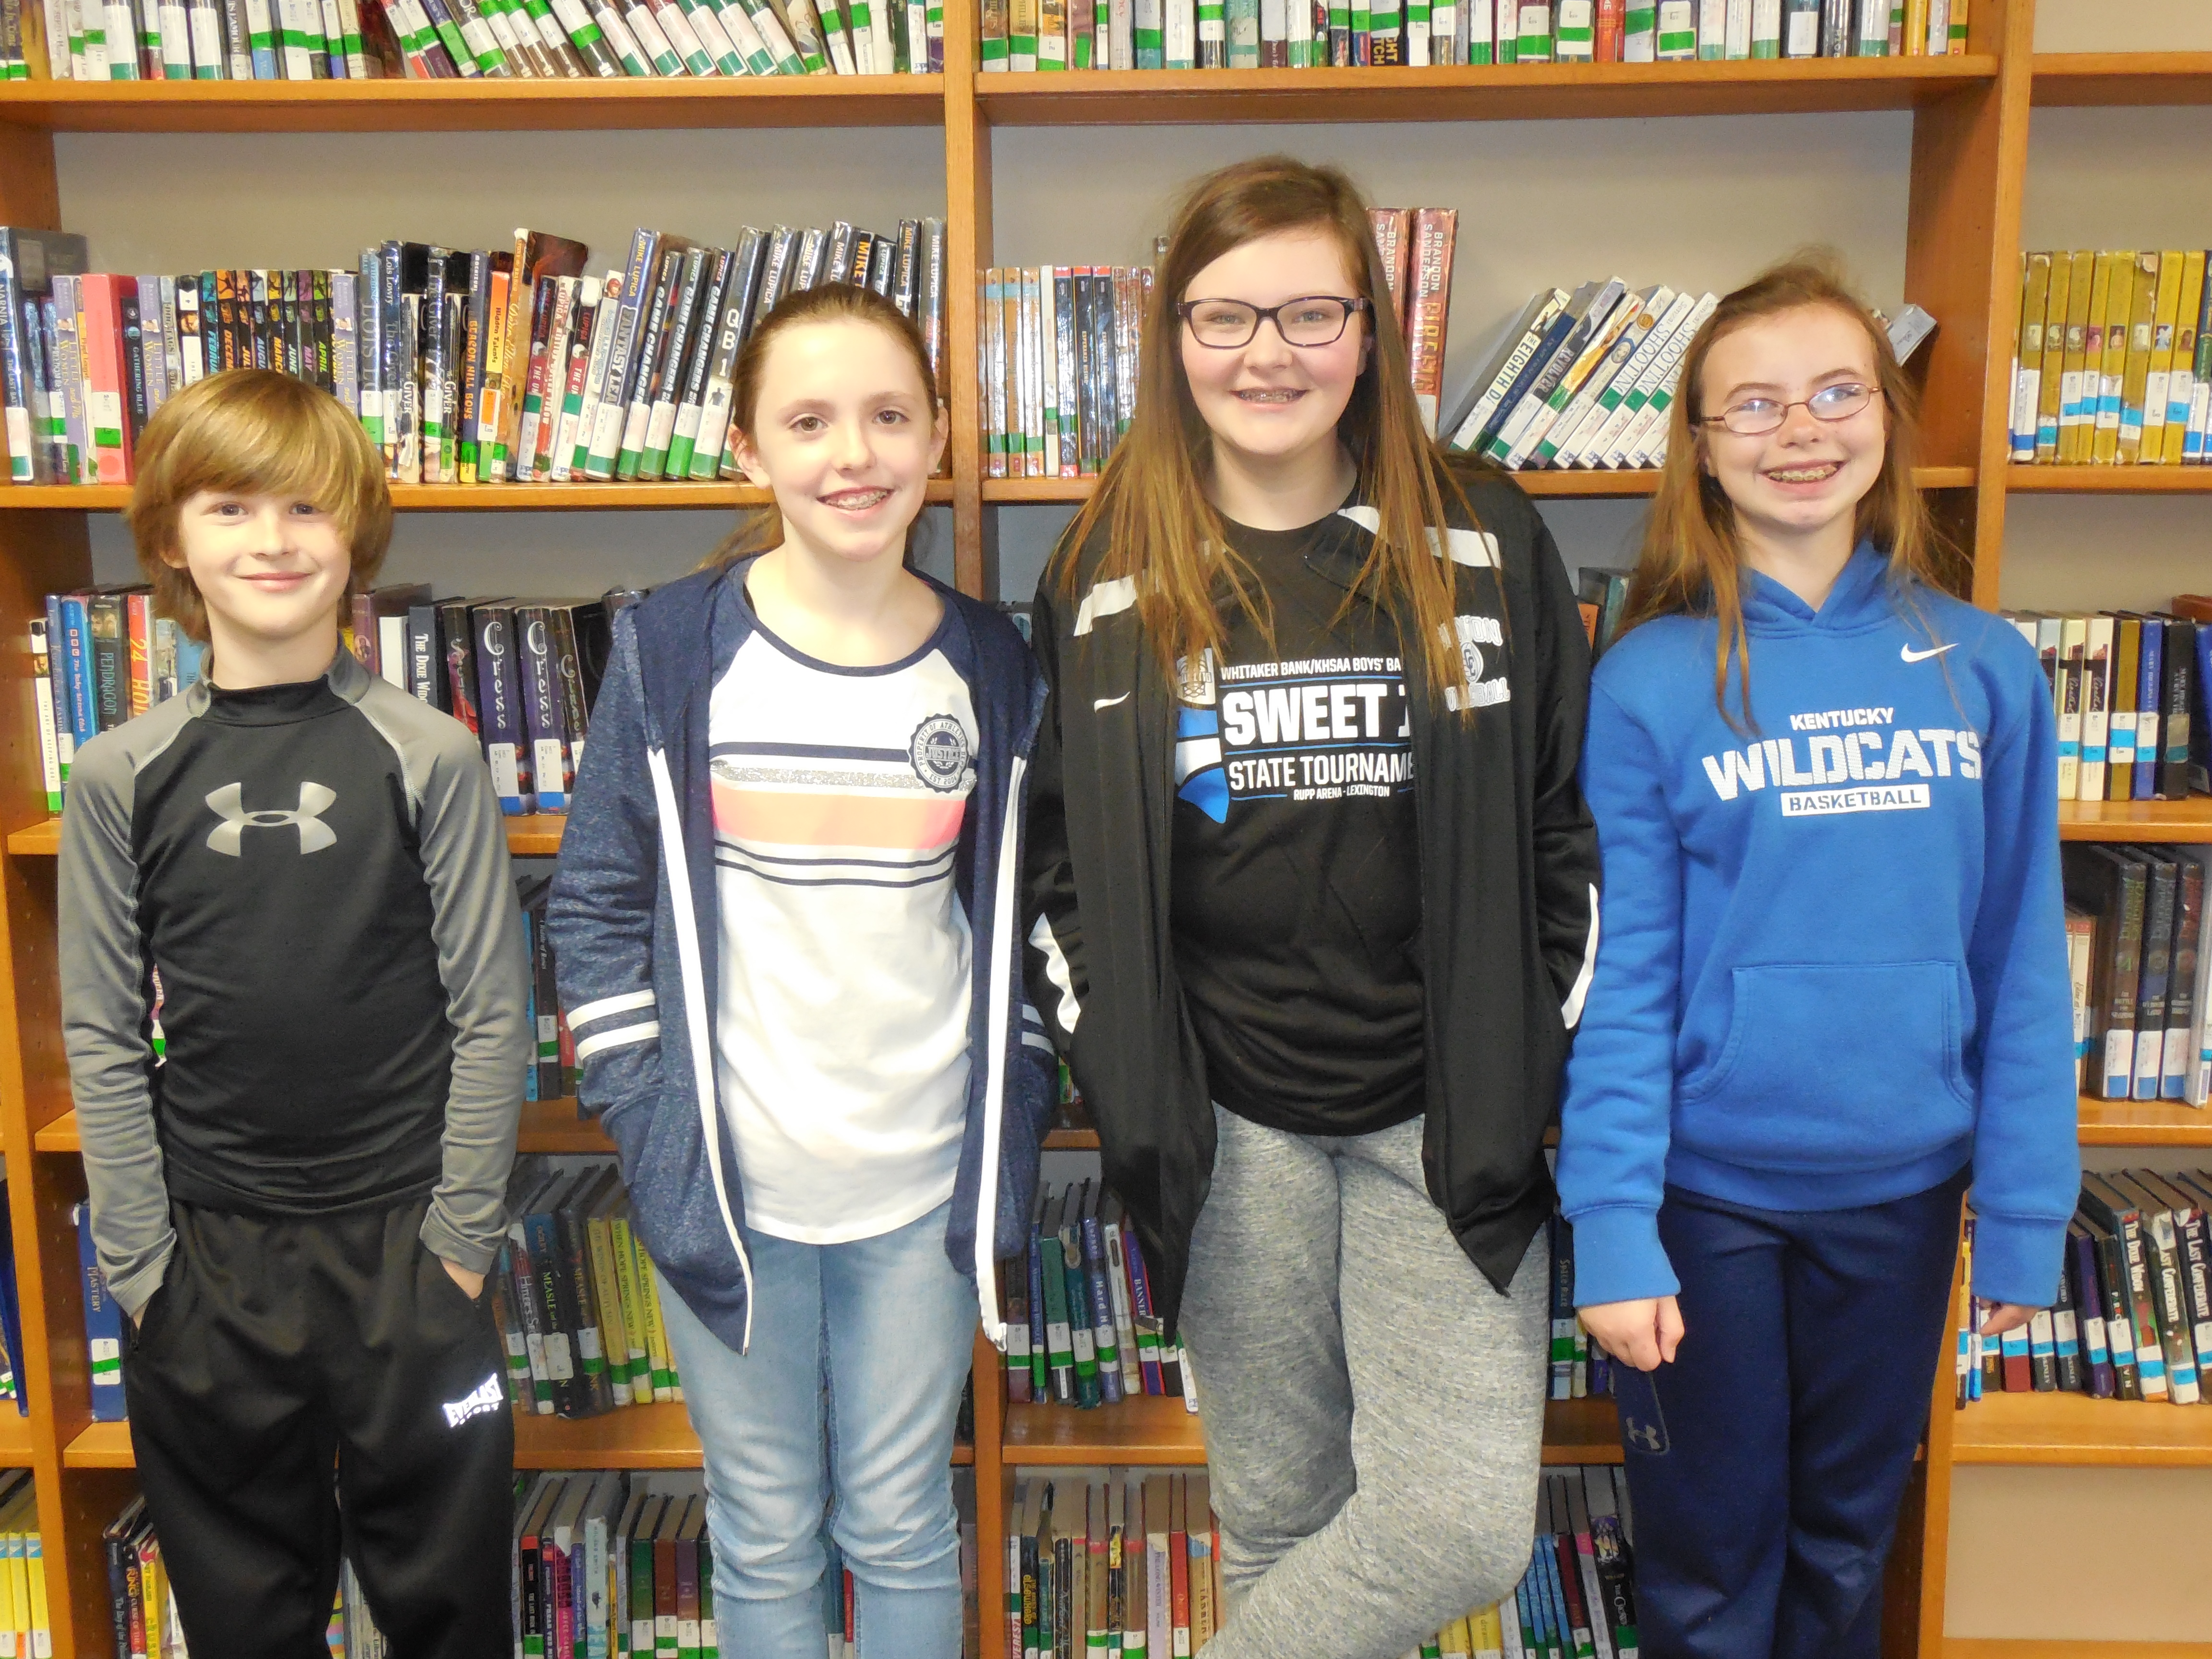 The winning team from the 5th & 6th grade competition was The JoJo Wolves.  Team members include Ian Holdiness, Jonna Upchurch, Claire Guffey, and Loren Little.